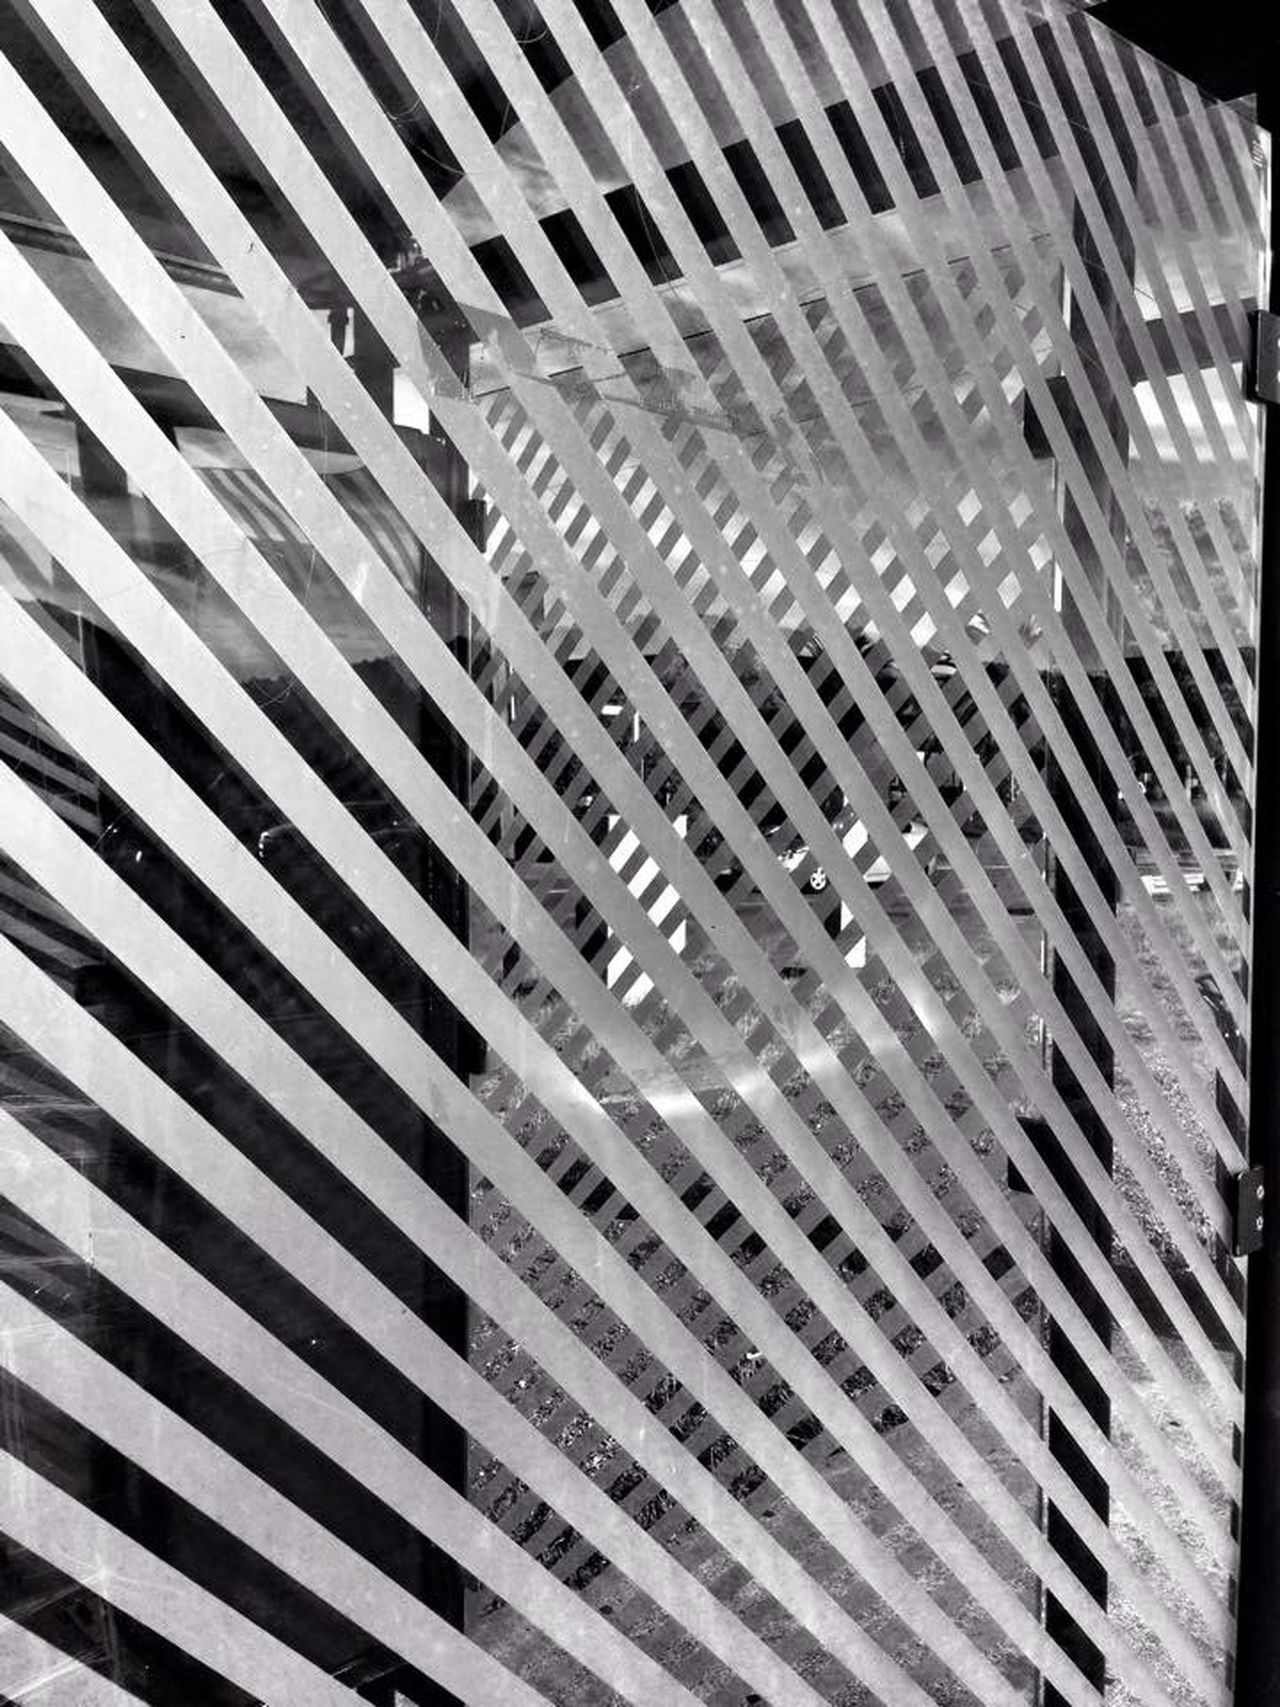 Lines and grids Blackandwhite Abstract Streetphotography Reflection Grids Gridspace Lines Glass Composition IPhoneography